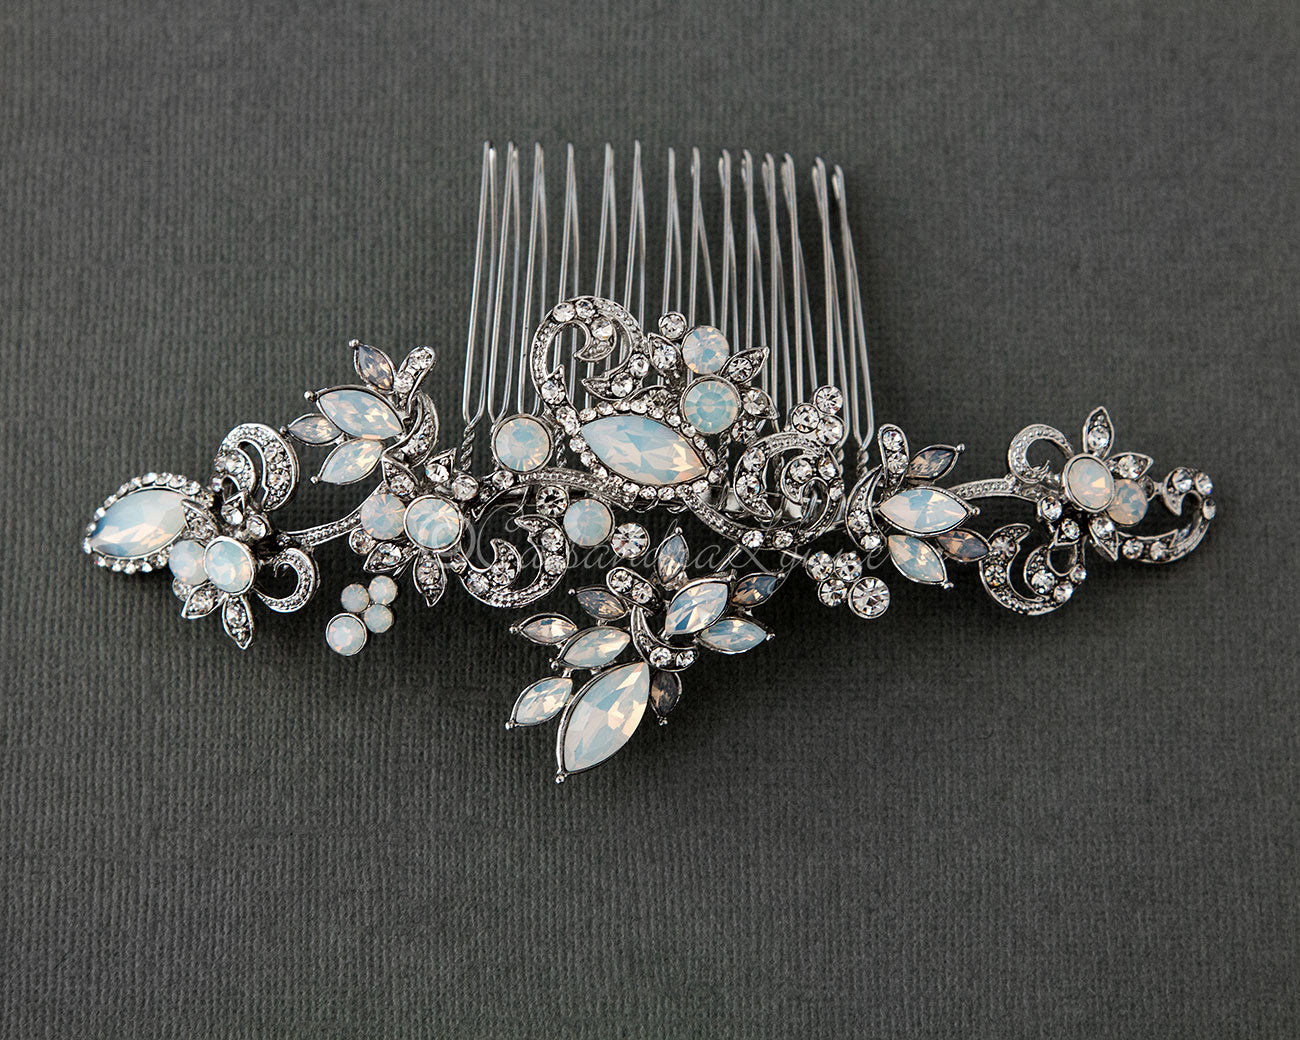 Vintage Wedding Comb with Opal Crystals